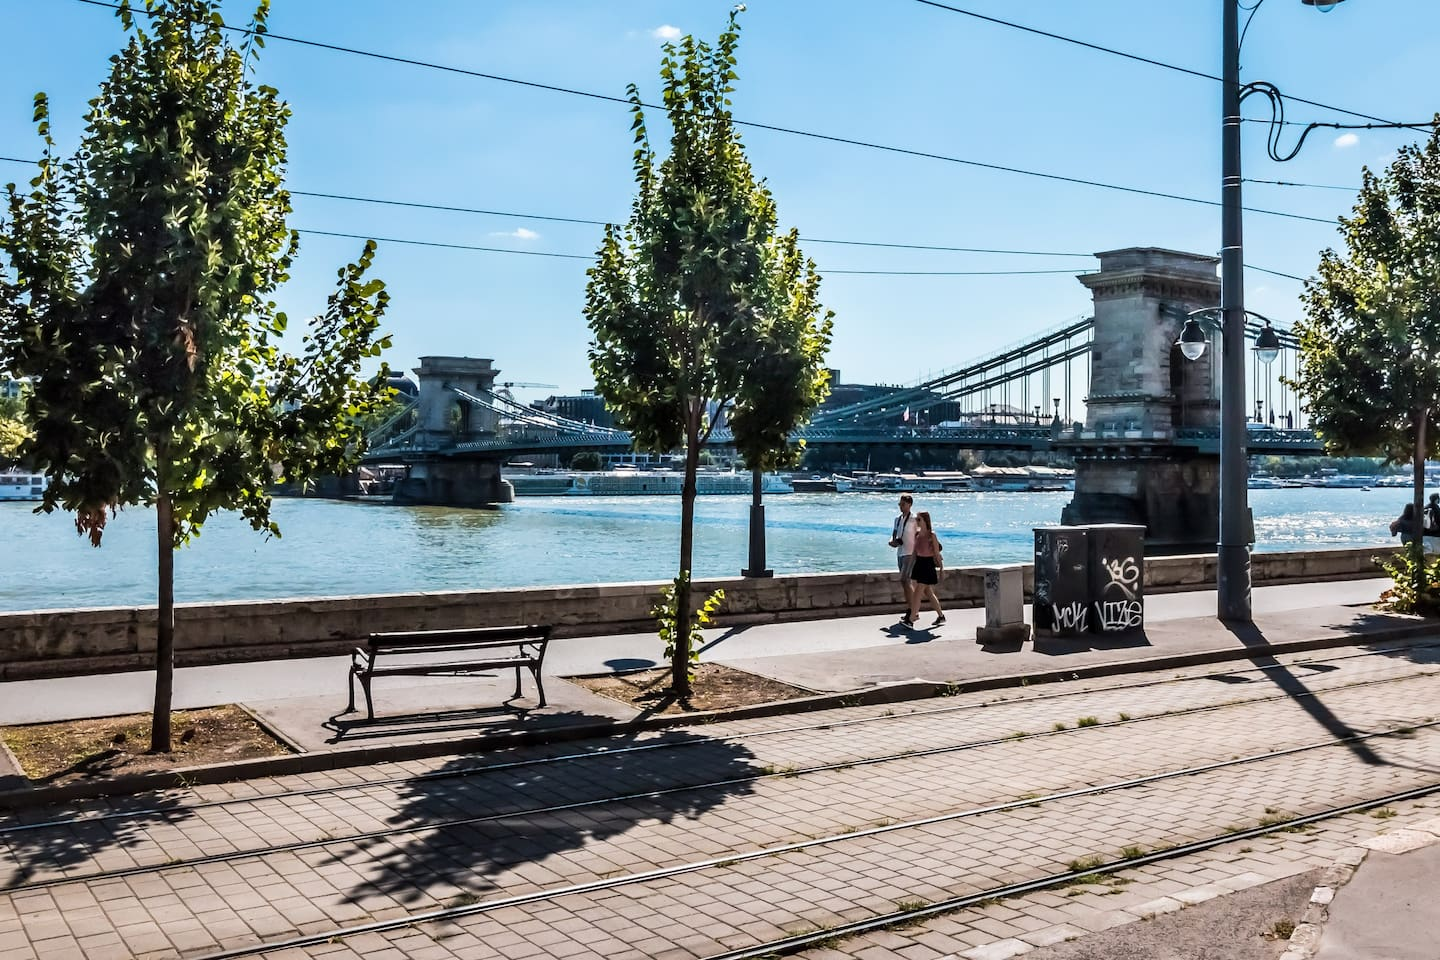 Beautyful large 2 Bedroom flat on ground floor, close to Buda Castle with Danube Panorama